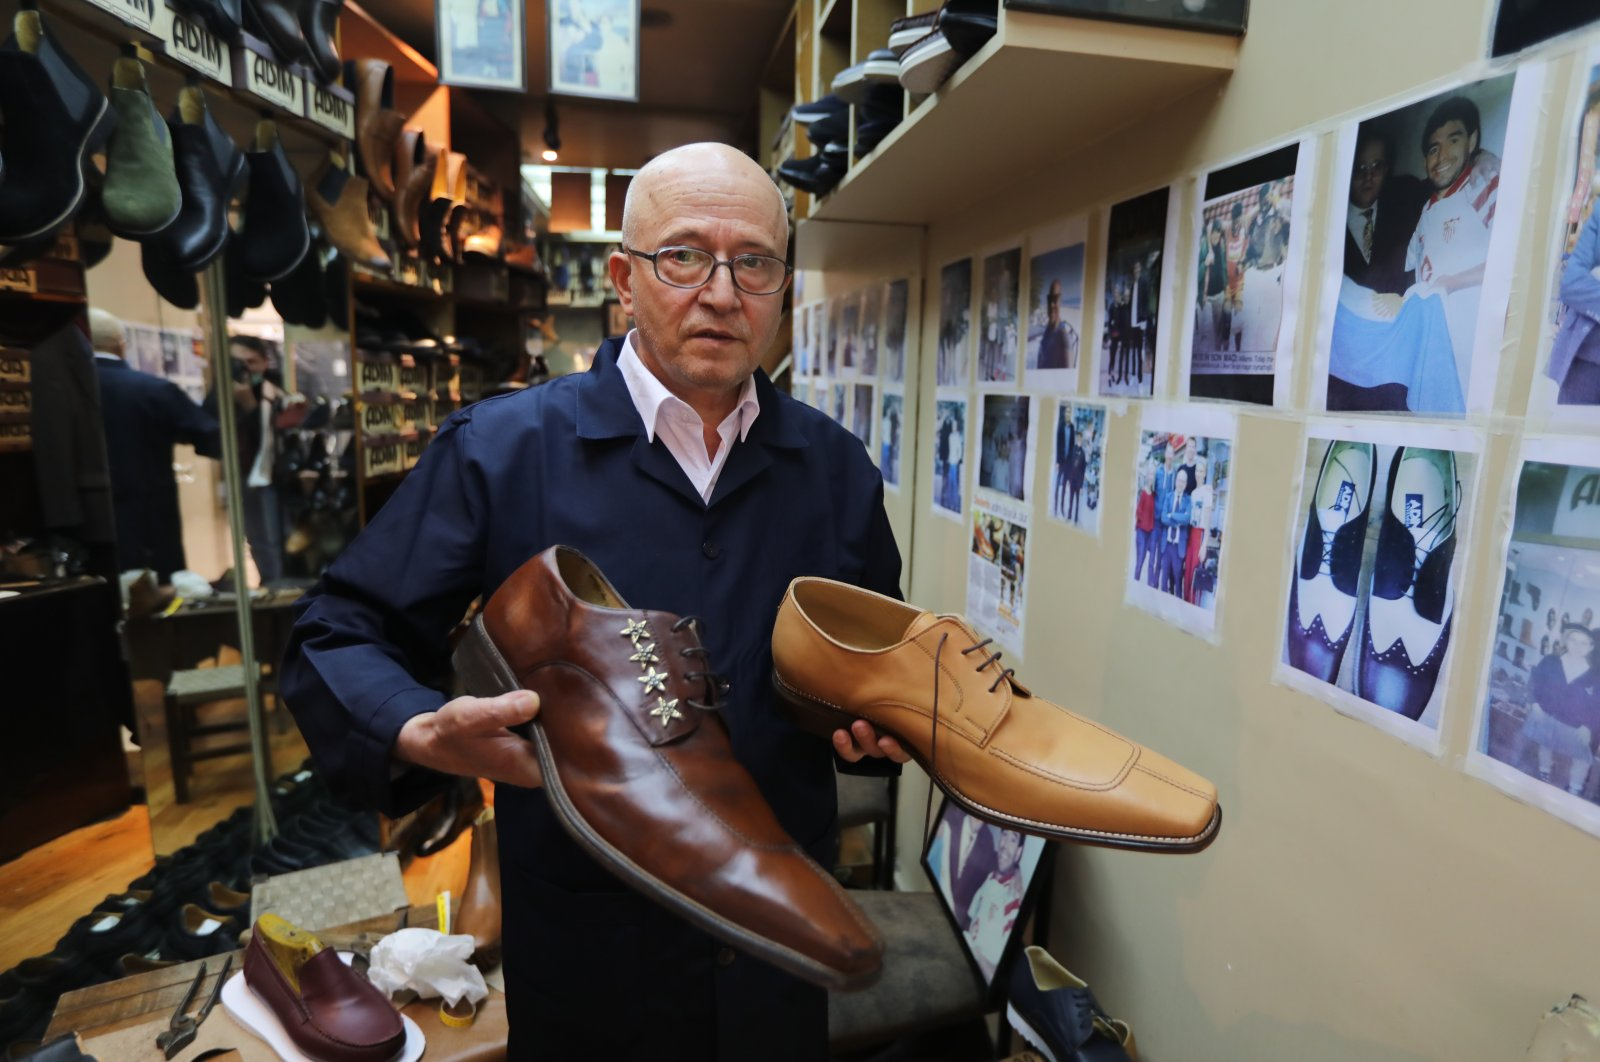 Shomaker Öncel Kalkan poses with the large-size shoes he made in his shop in Beyoğlu, Istanbul, Turkey, May 24, 2021. (AA Photo)